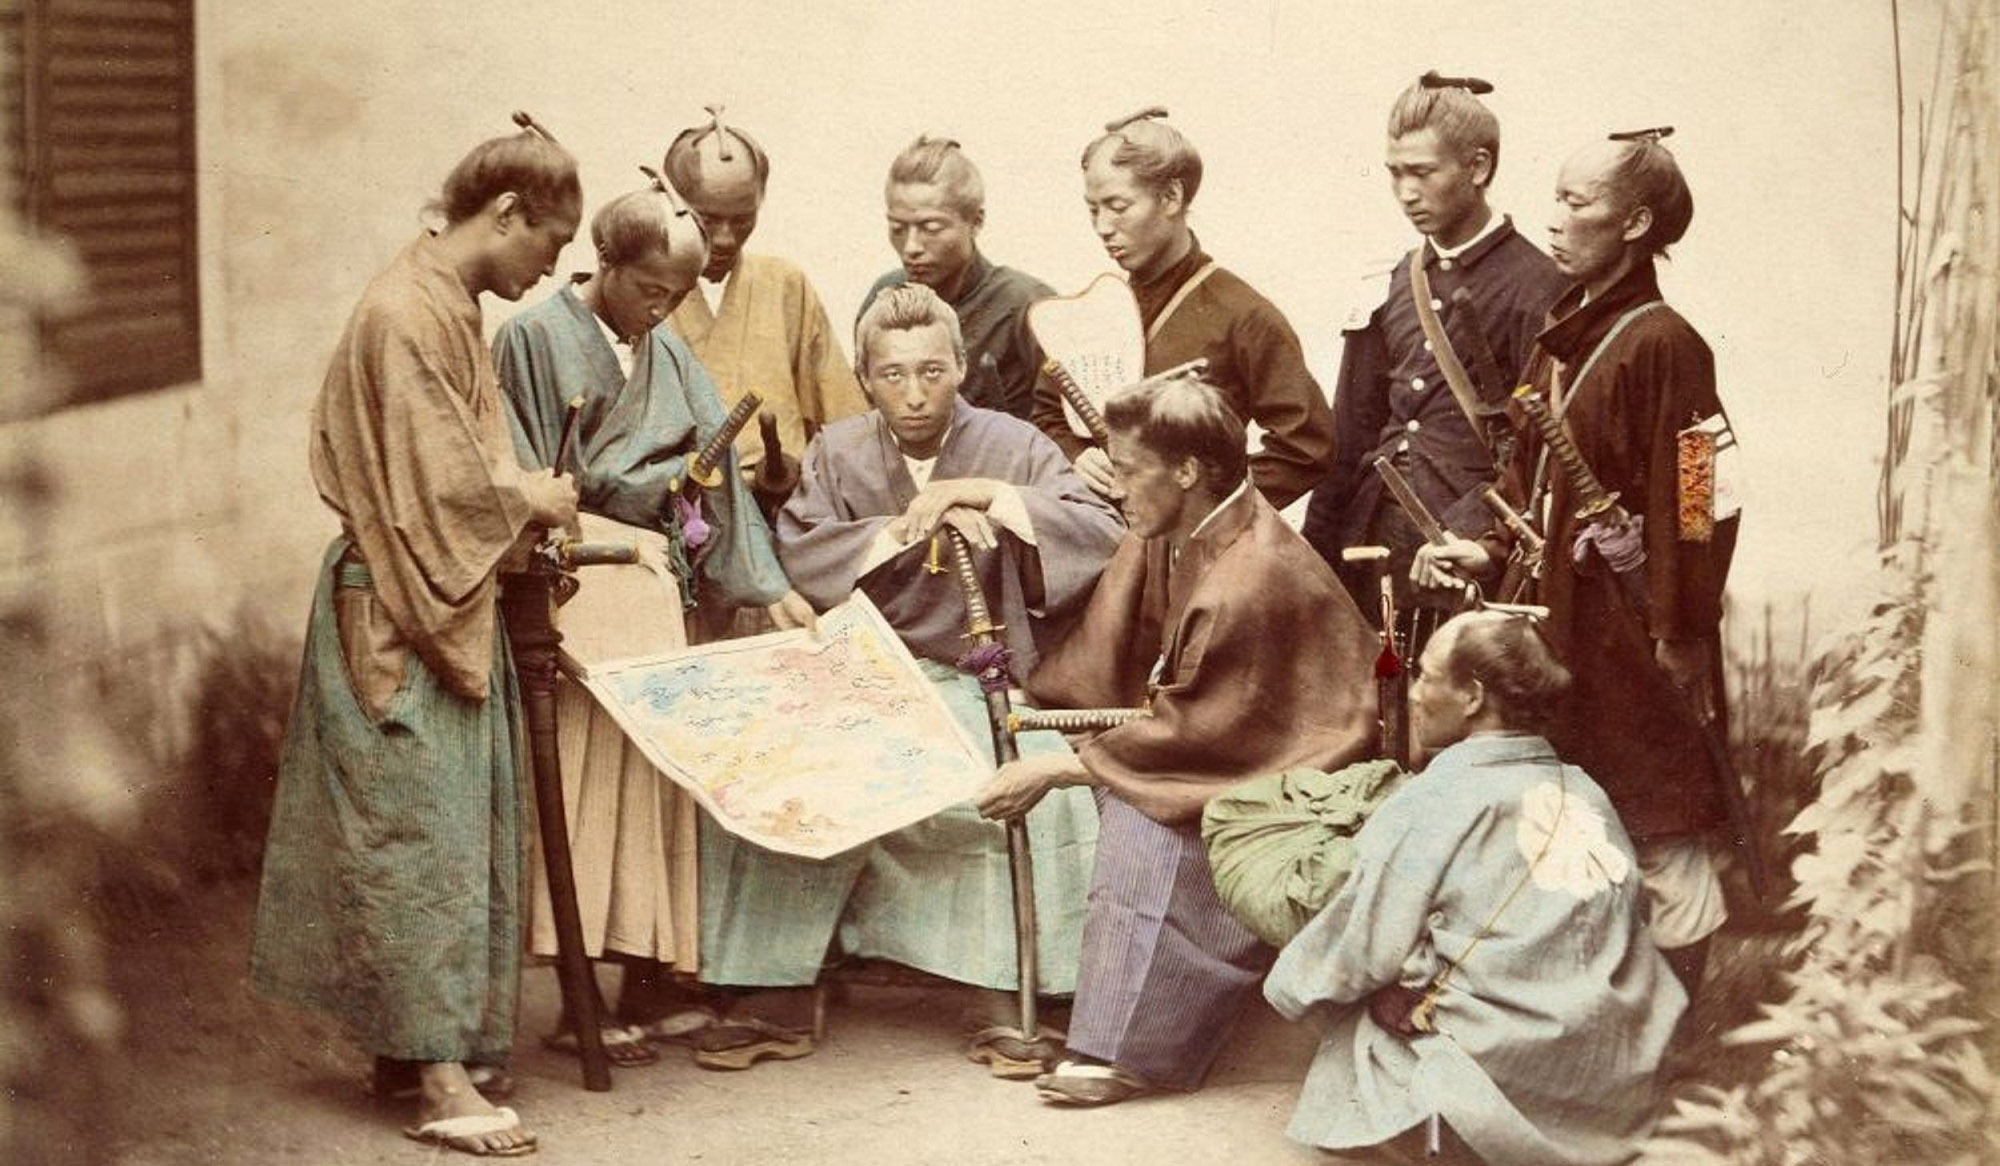 Samurai rules for peace and war